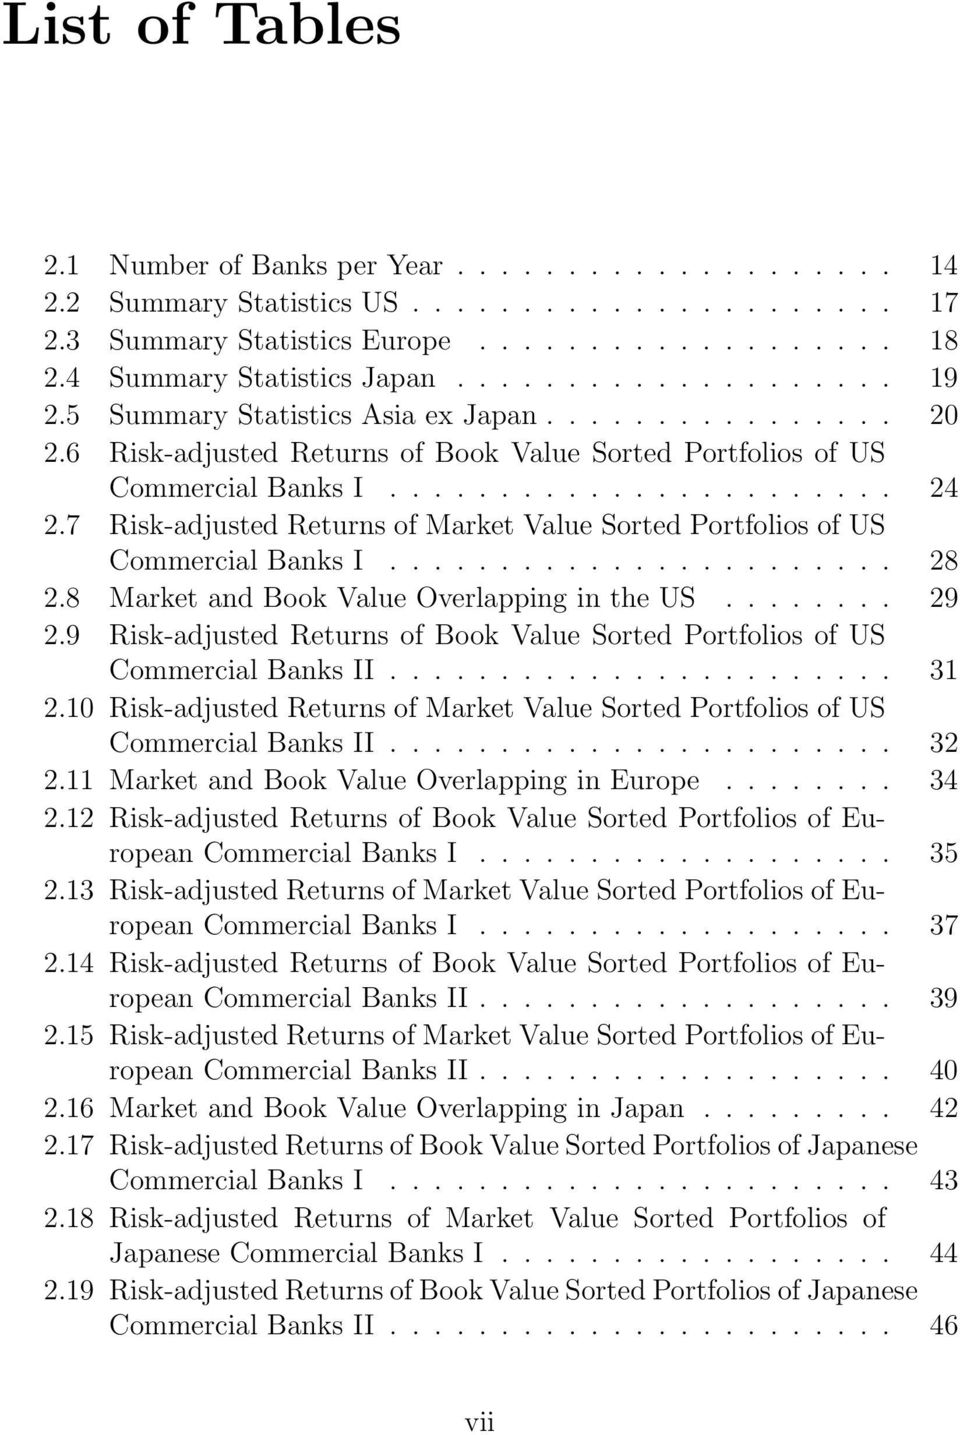 7 Risk-adjusted Returns of Market Value Sorted Portfolios of US Commercial Banks I....................... 28 2.8 Market and Book Value Overlapping in the US........ 29 2.